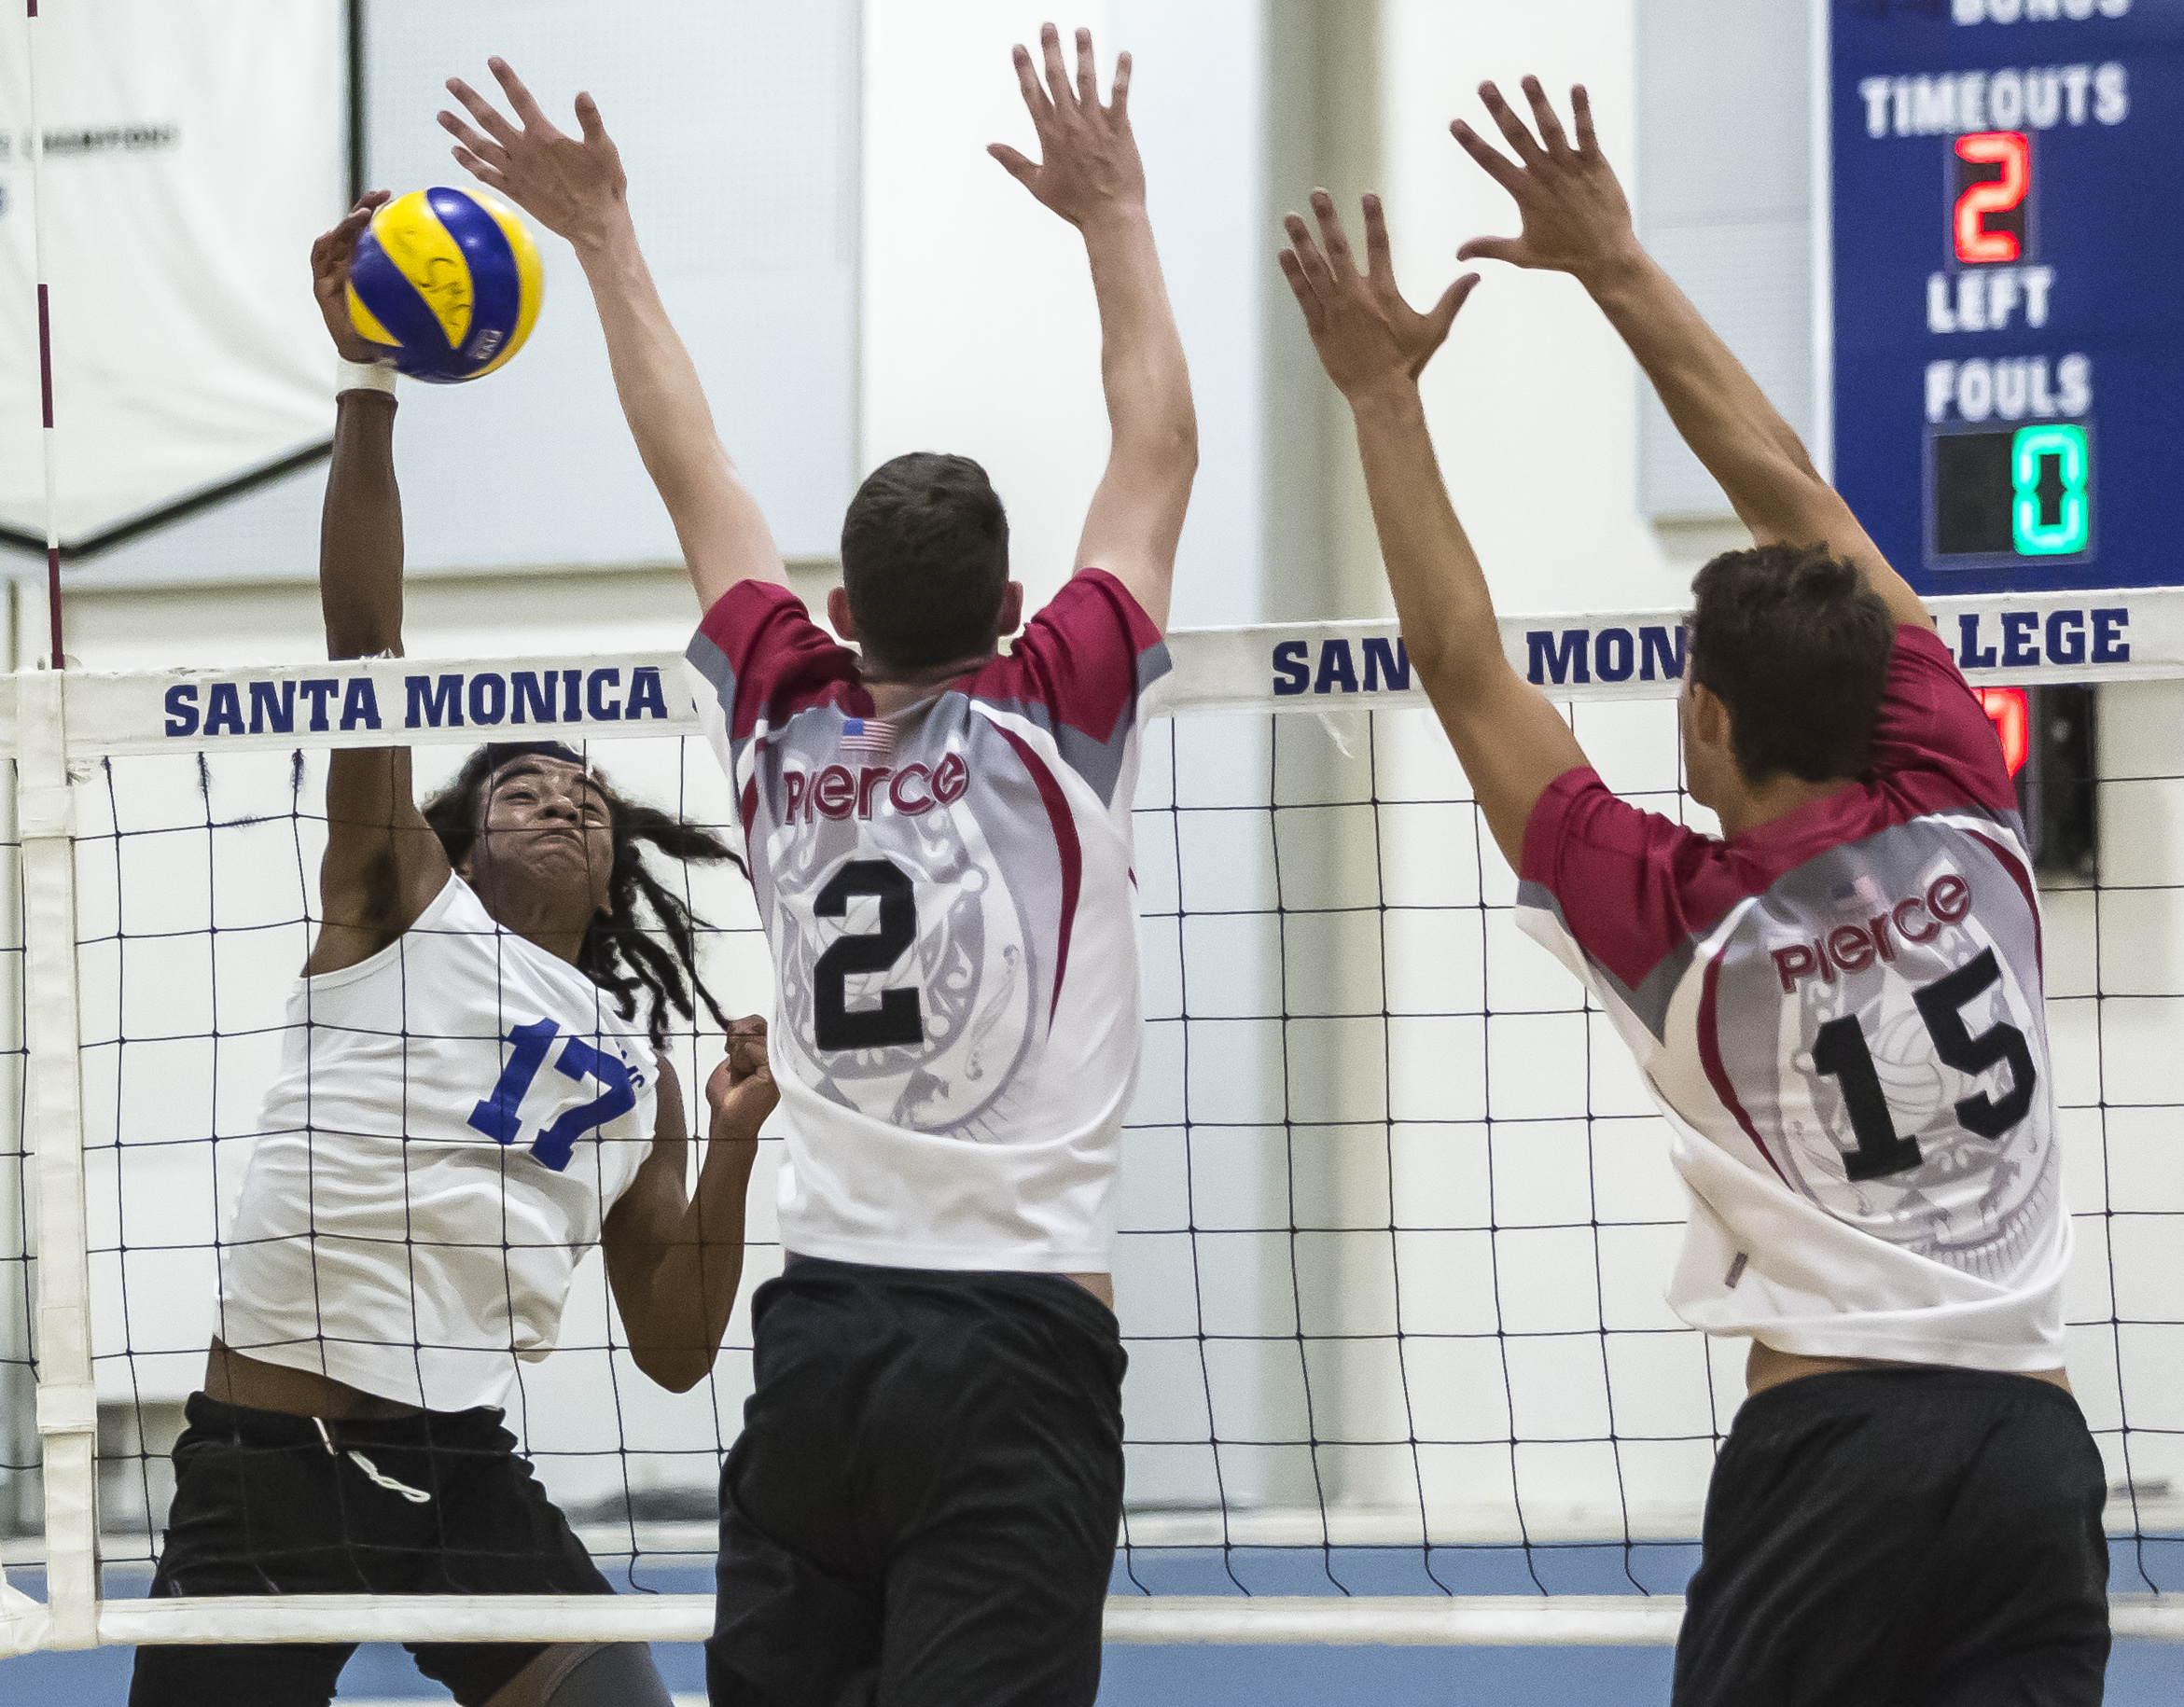 Santa Monica Corsair freshman outside hitter Dane Pieper (17, left) powerfully spikes the ball into the Pierce College defense as Pierce College Brahmas freshman opposite hitter Trenton Sellers (2, middle) and freshmen middle blocker Max Petuhov (15, right)prepare to block the incoming spike during the first set of the game in the Santa Monica College gymnasium in Santa Monica Calif., on Friday, April 21 2017. The Corsairs would go on to win the game 3-2, which would allow the Corsairs to advance to the second round of the CCCAA playoffs. (Corsair Photo: Matthew Martin)